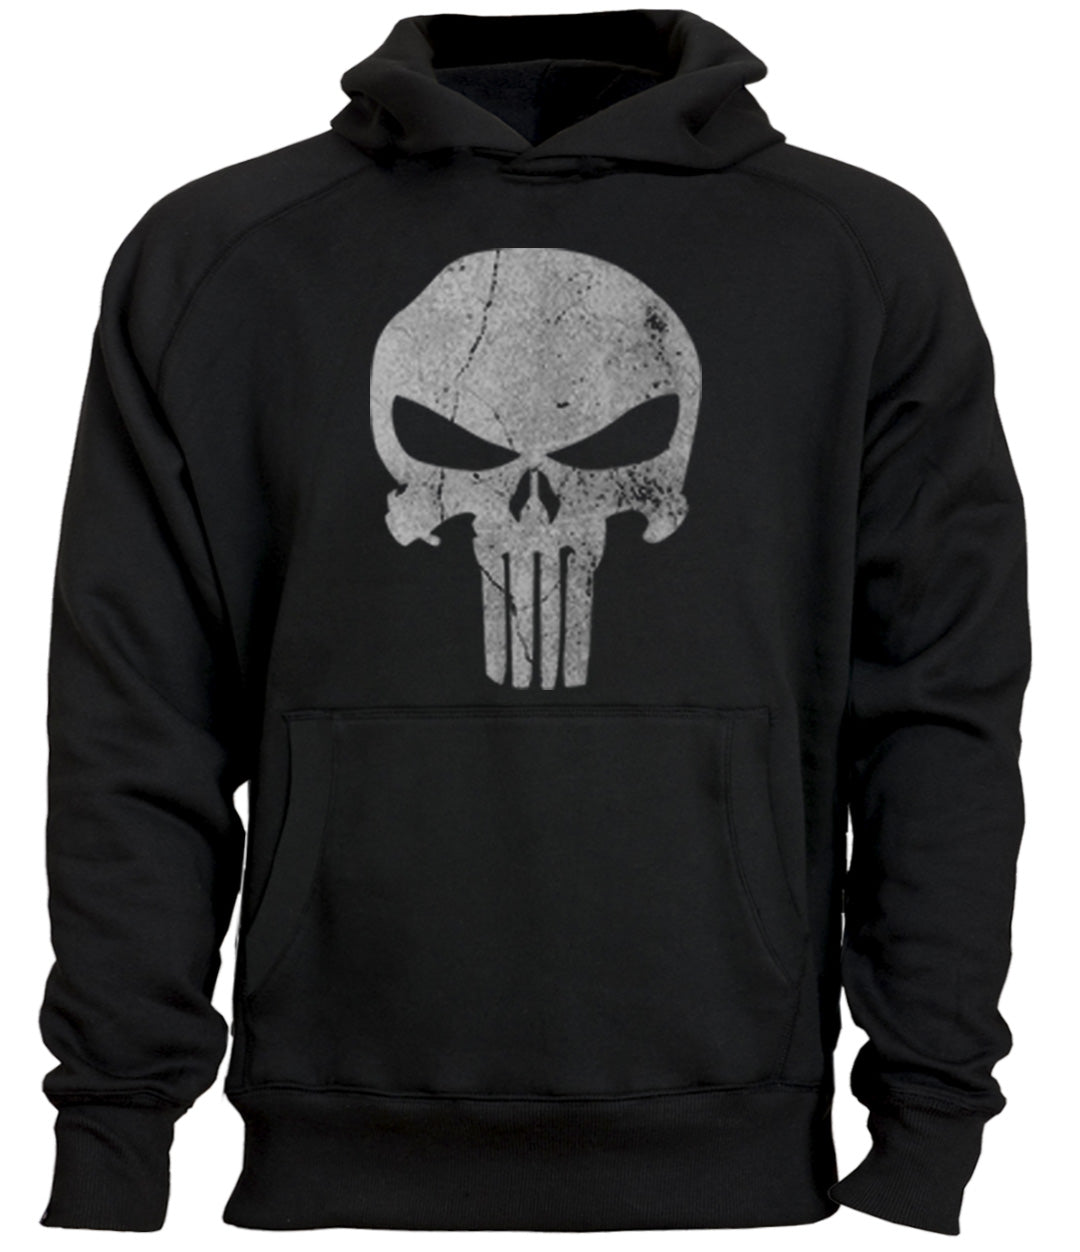 punisher hoodie black tactical gear